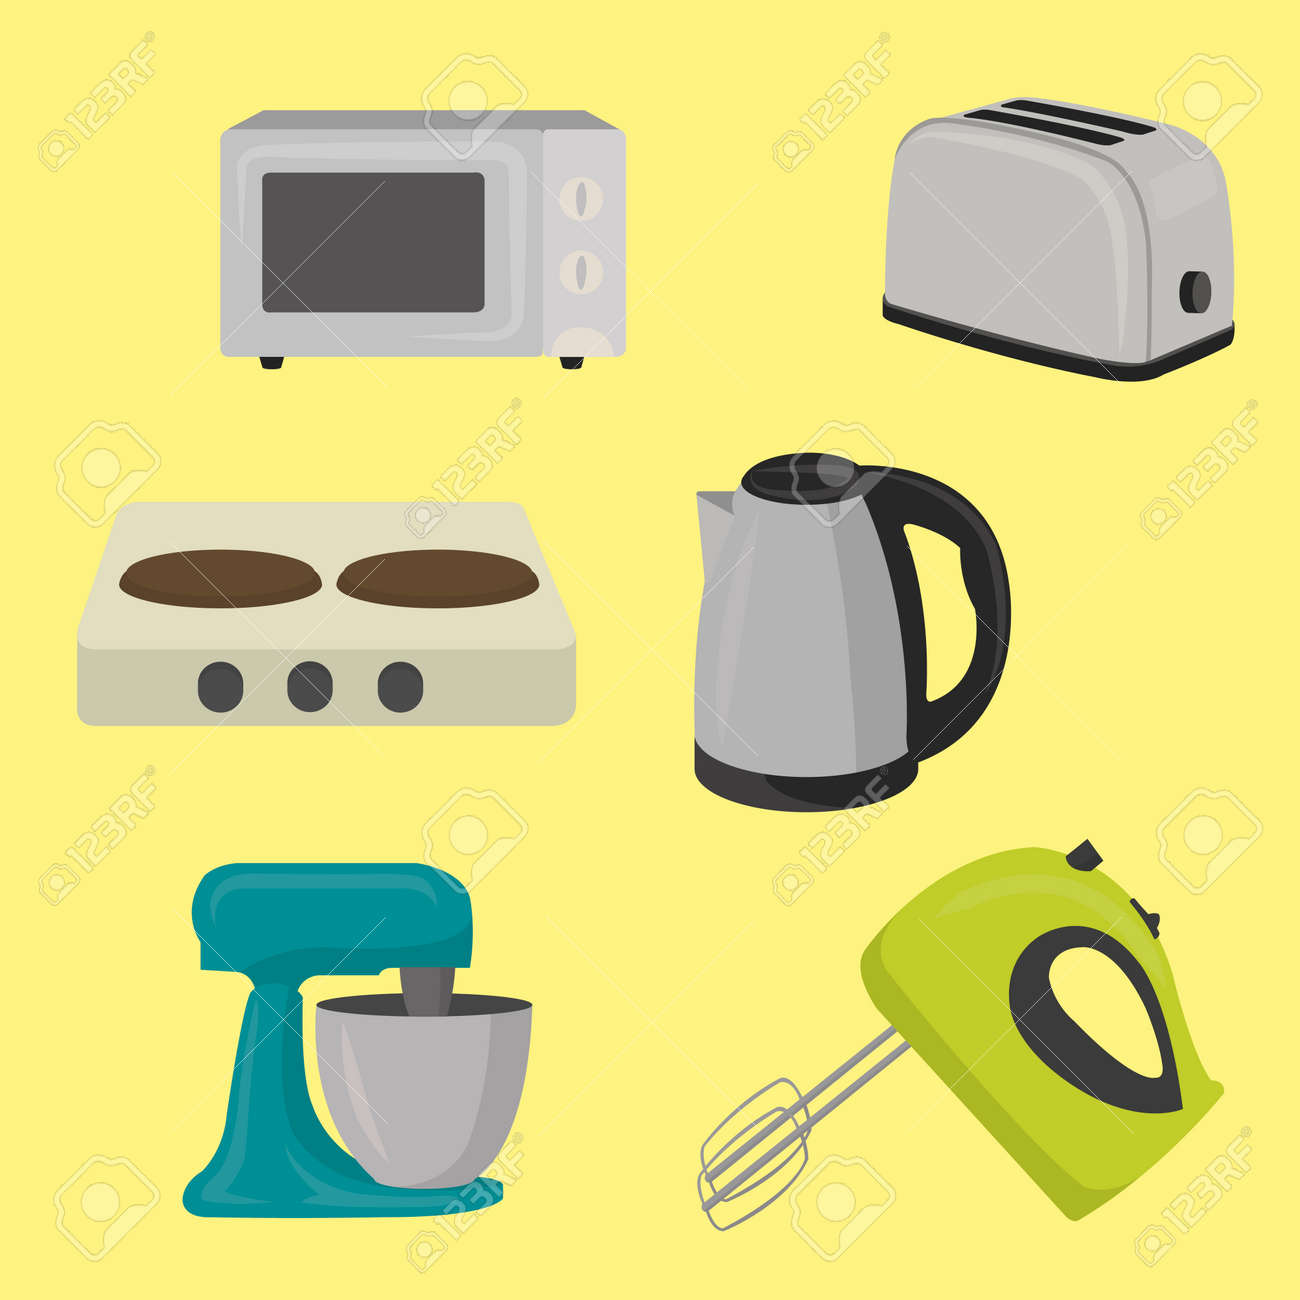 Set Of Small Kitchen Household Appliances Design Flat Isolated Royalty Free Cliparts Vectors And Stock Illustration Image 83586517